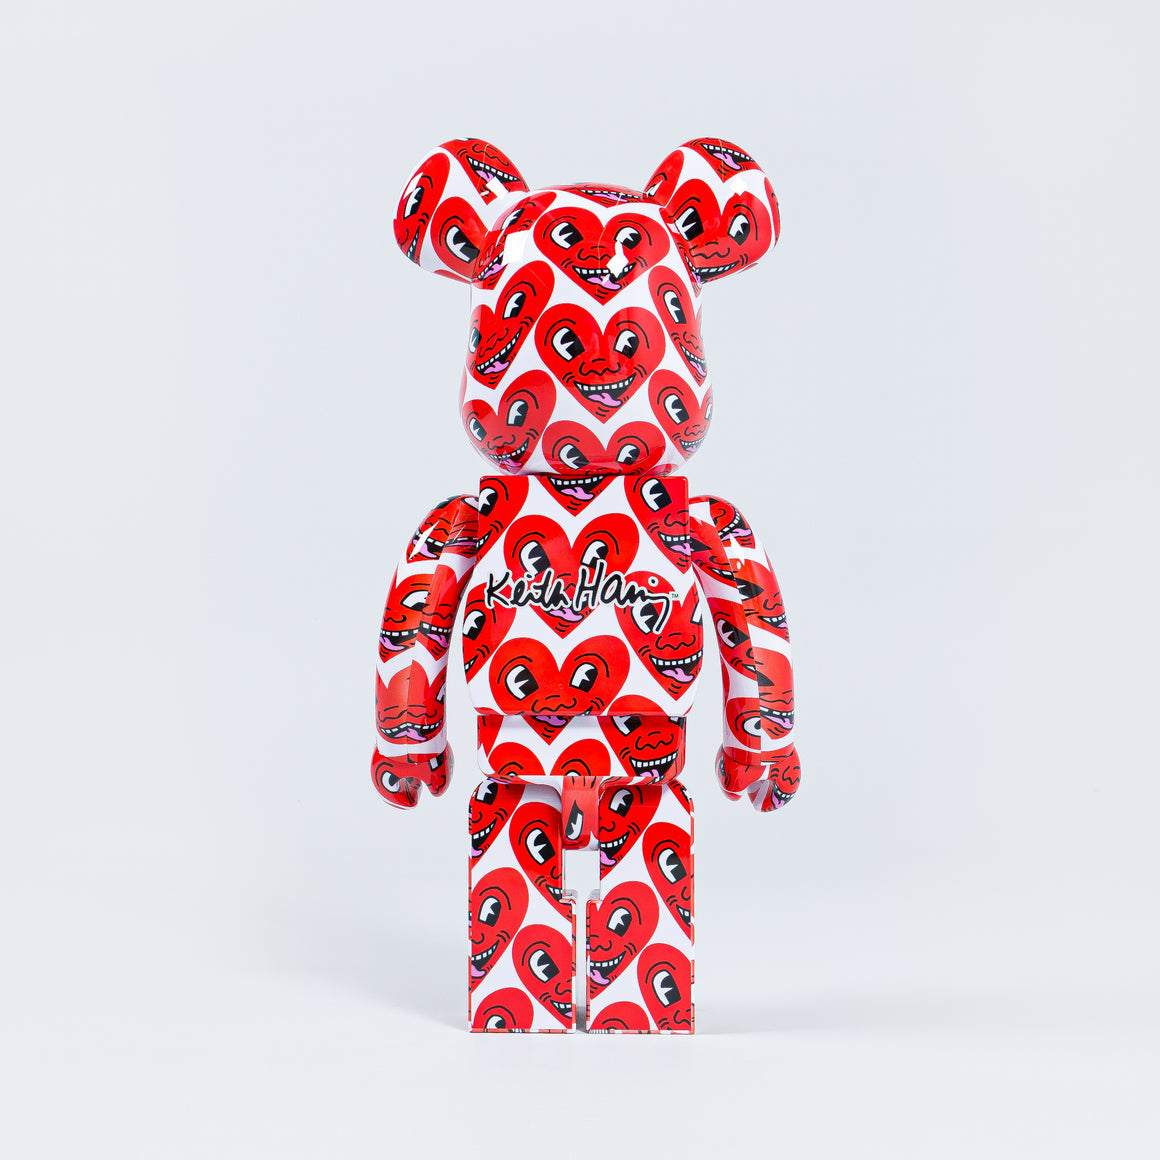 Medicom Toy - Be@rbrick 1000% - Keith Haring #6 - Up There